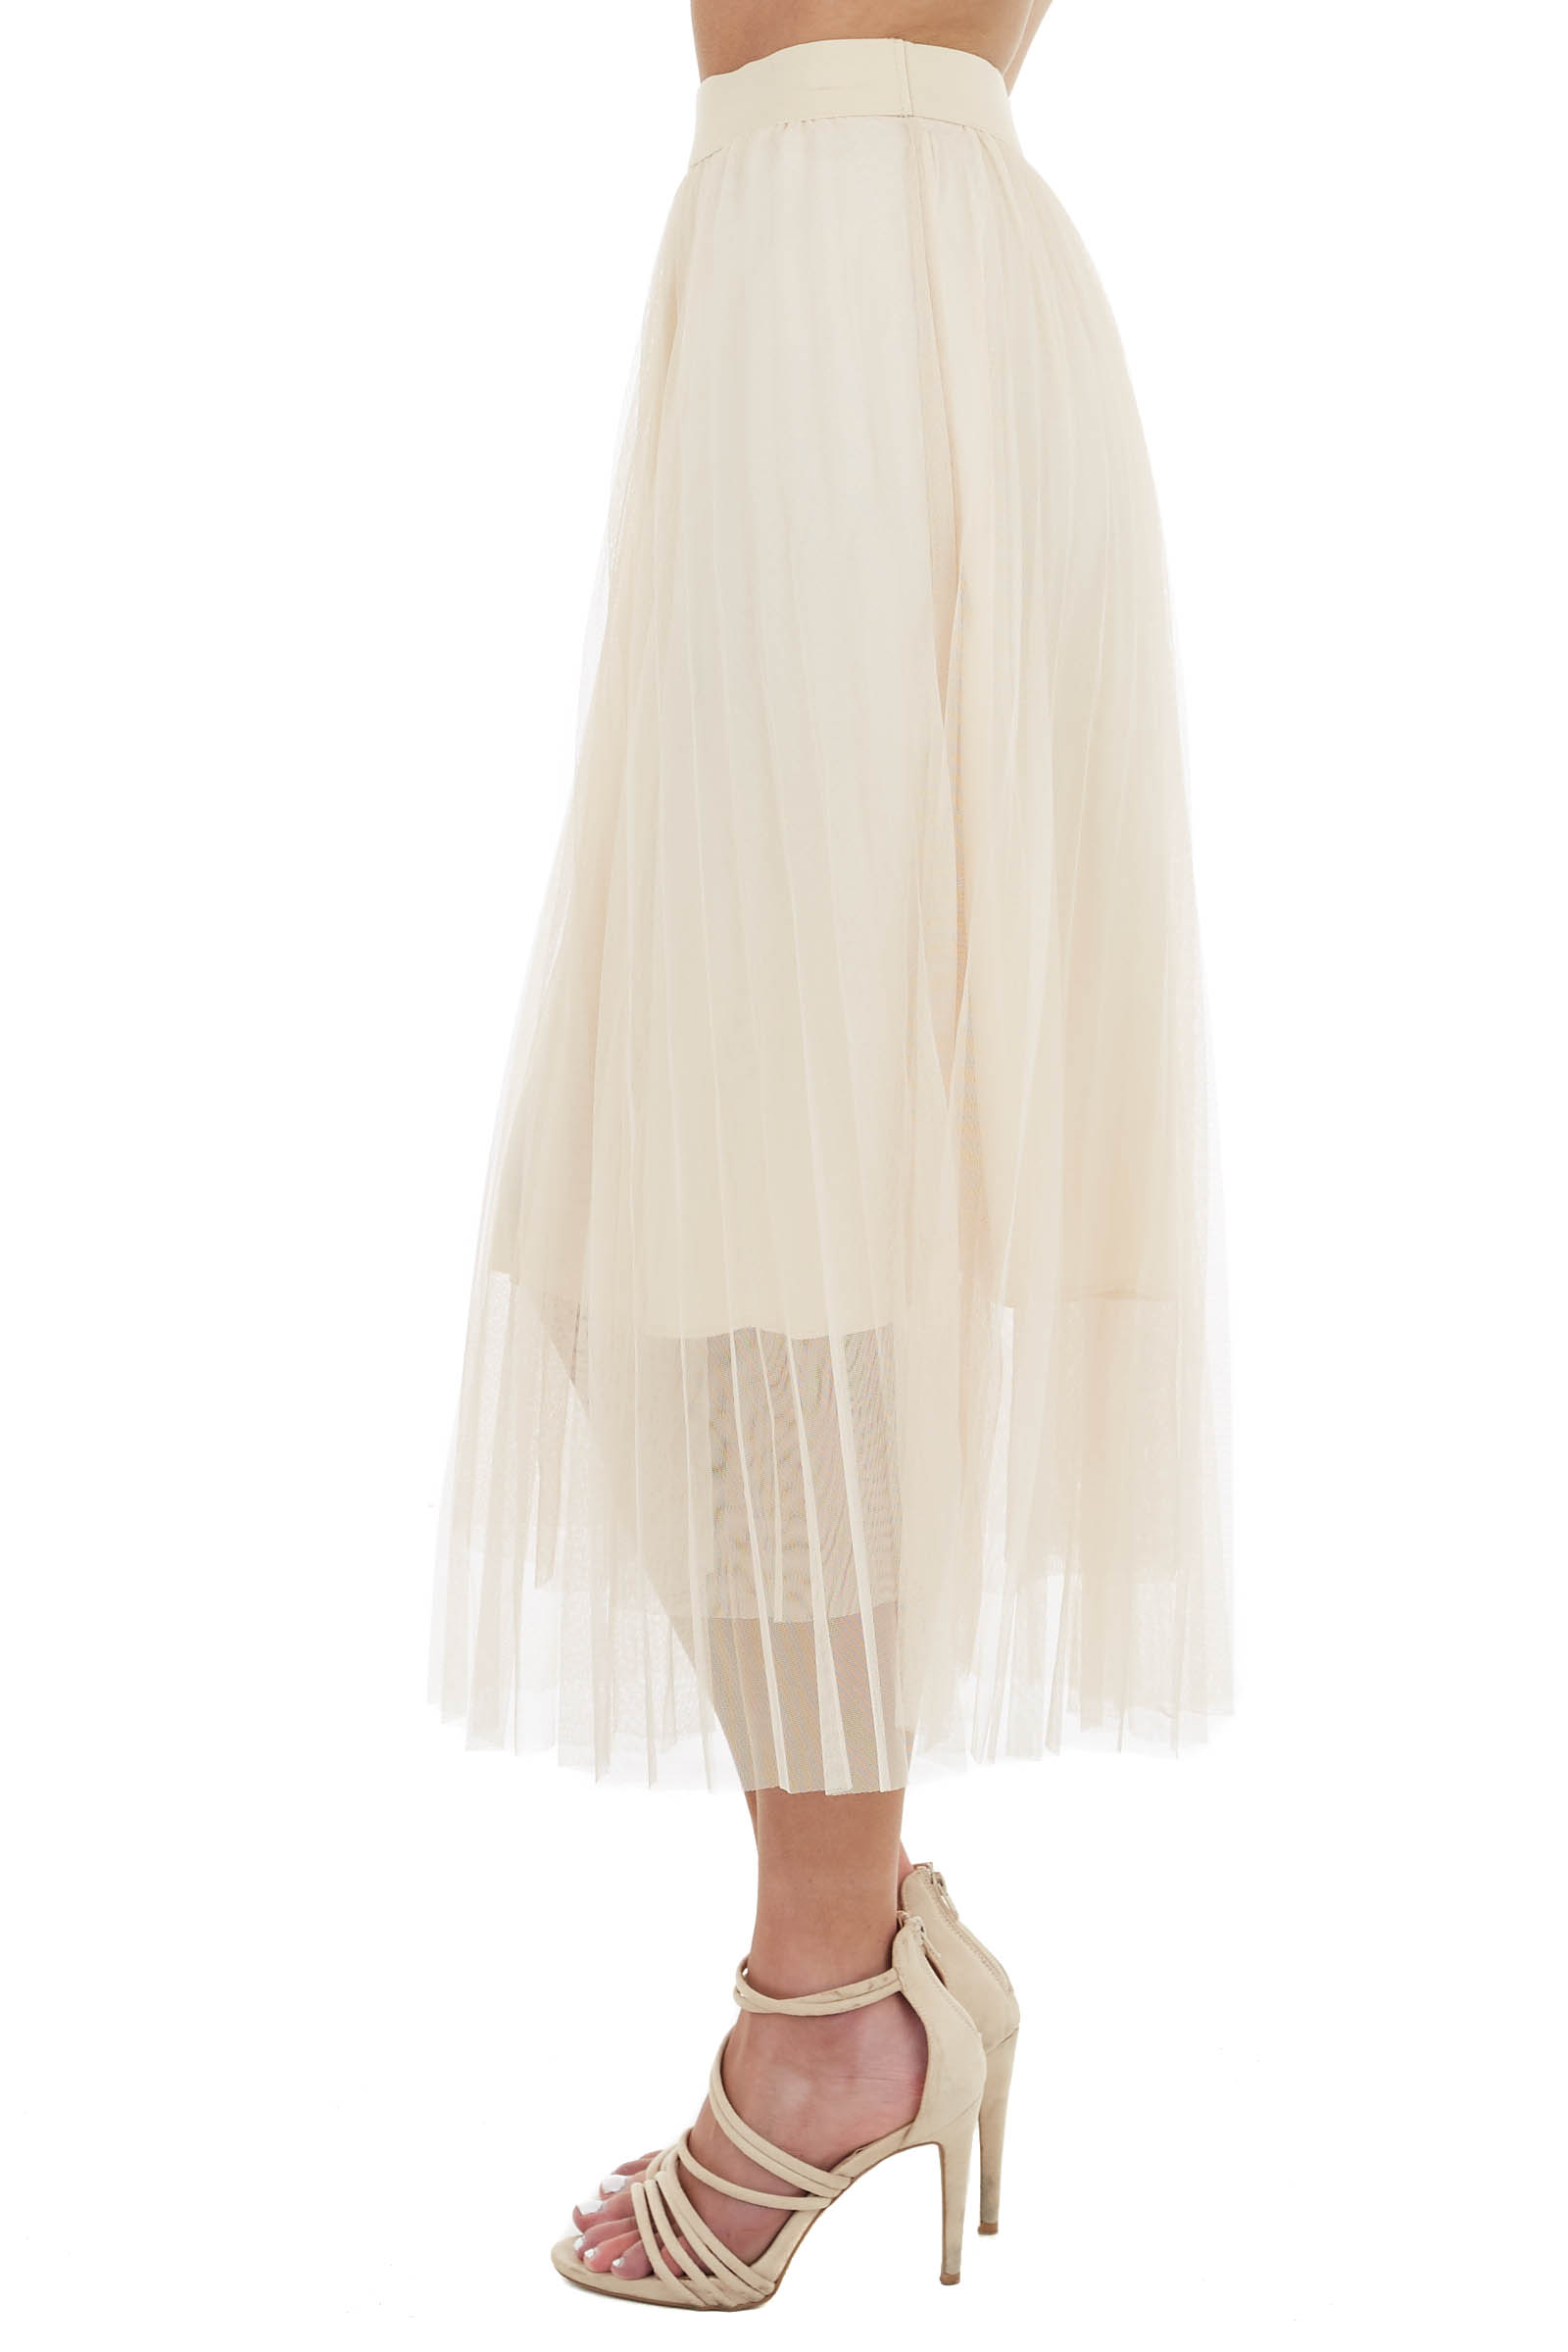 Champagne Tulle Pleated Skirt with Elastic Waist